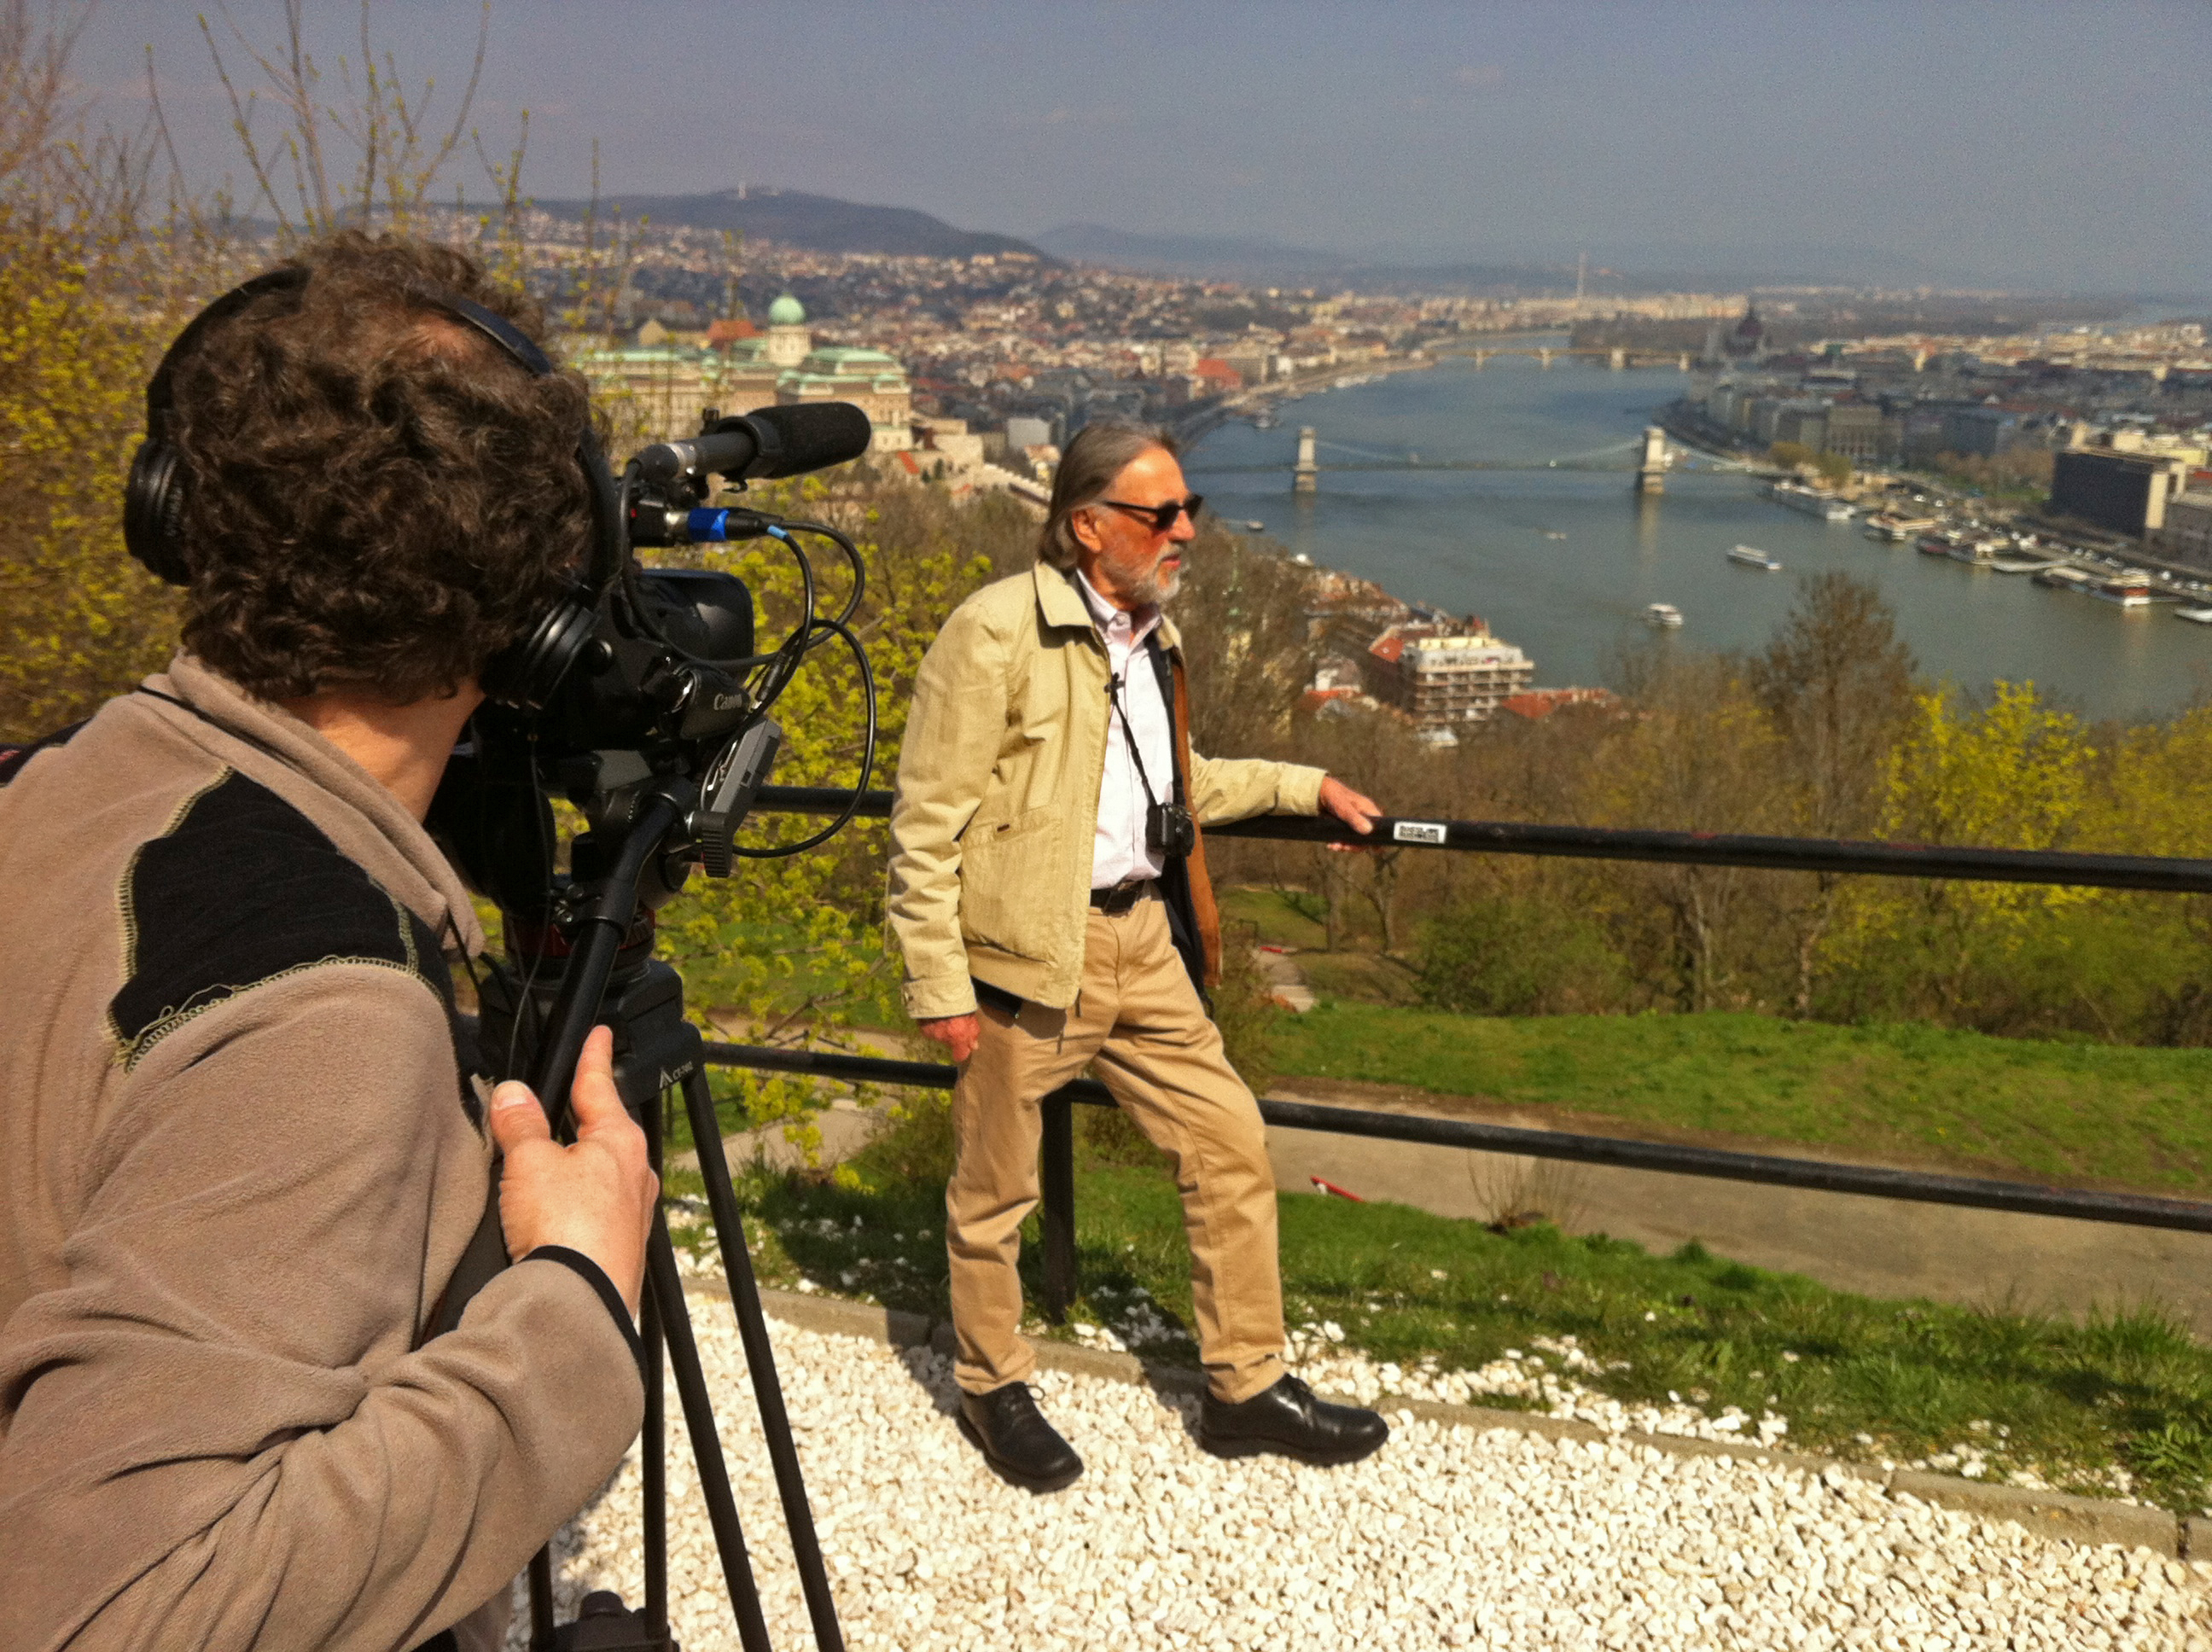 Olivier Chambon, AFC filming Vilmos in Budapest. Photo by the filmmaker